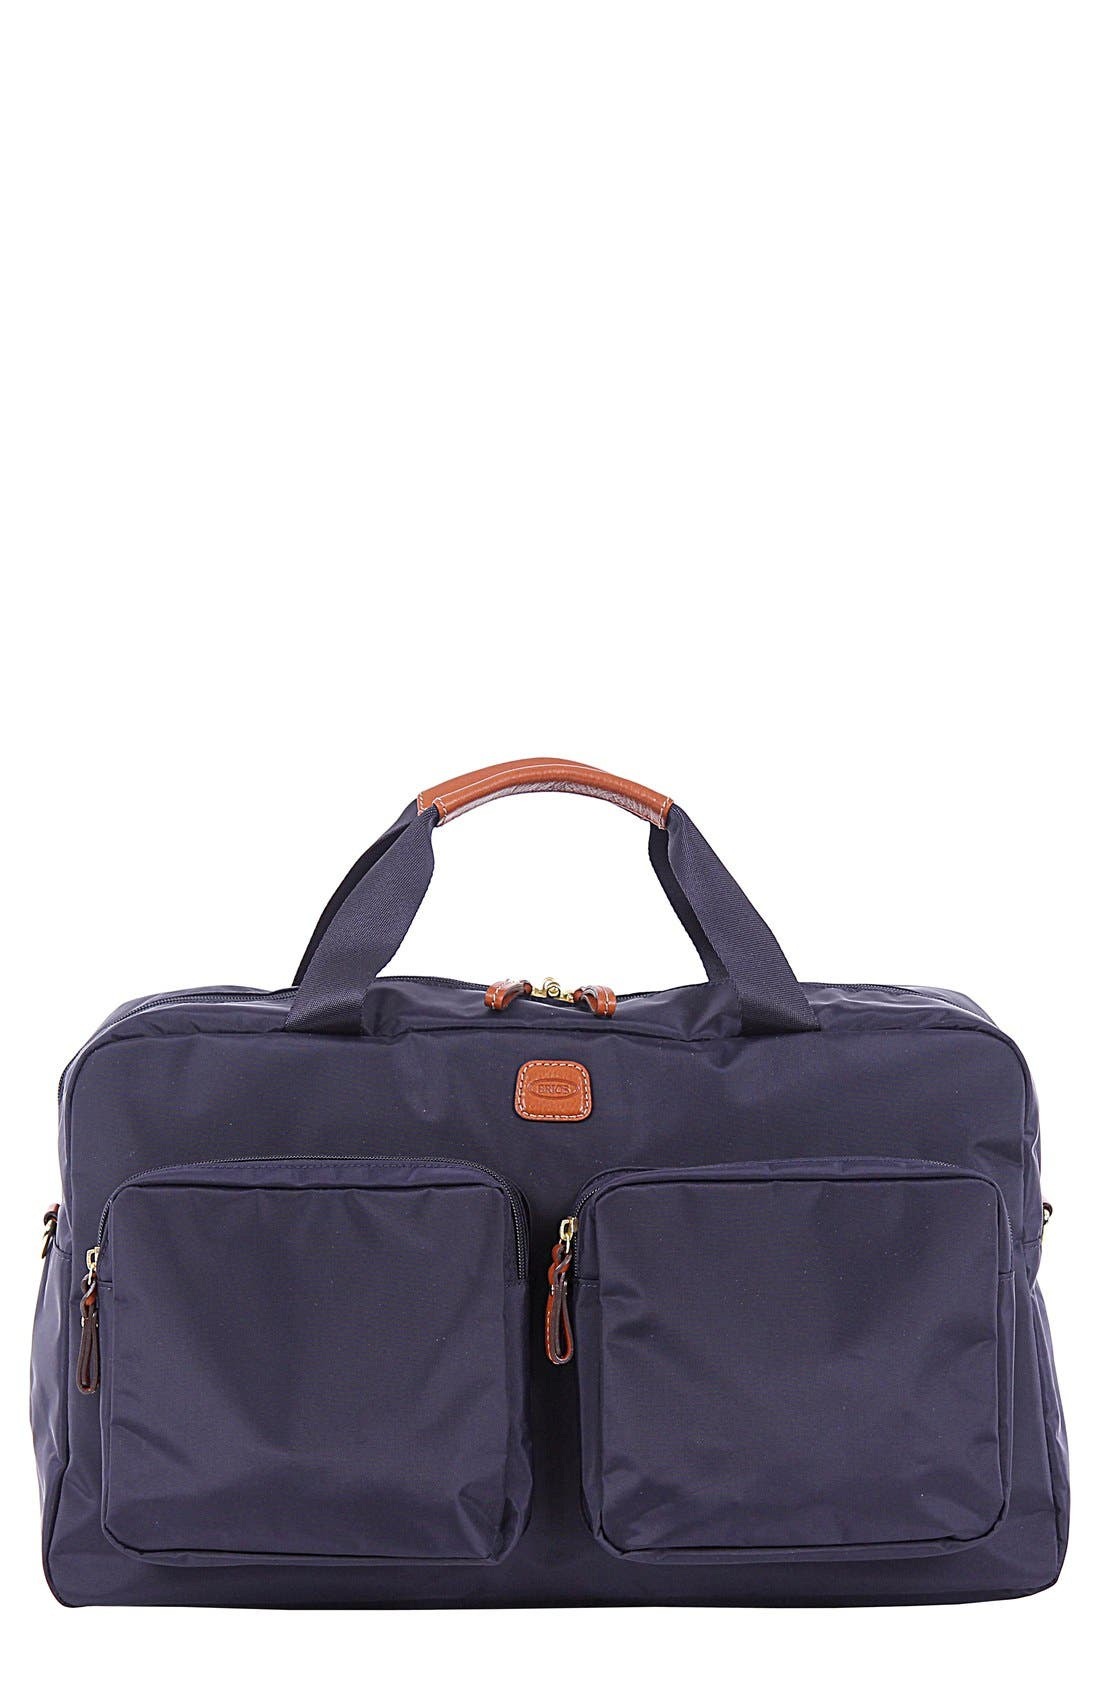 BRIC'S 'X-Bag Boarding' Duffel Bag